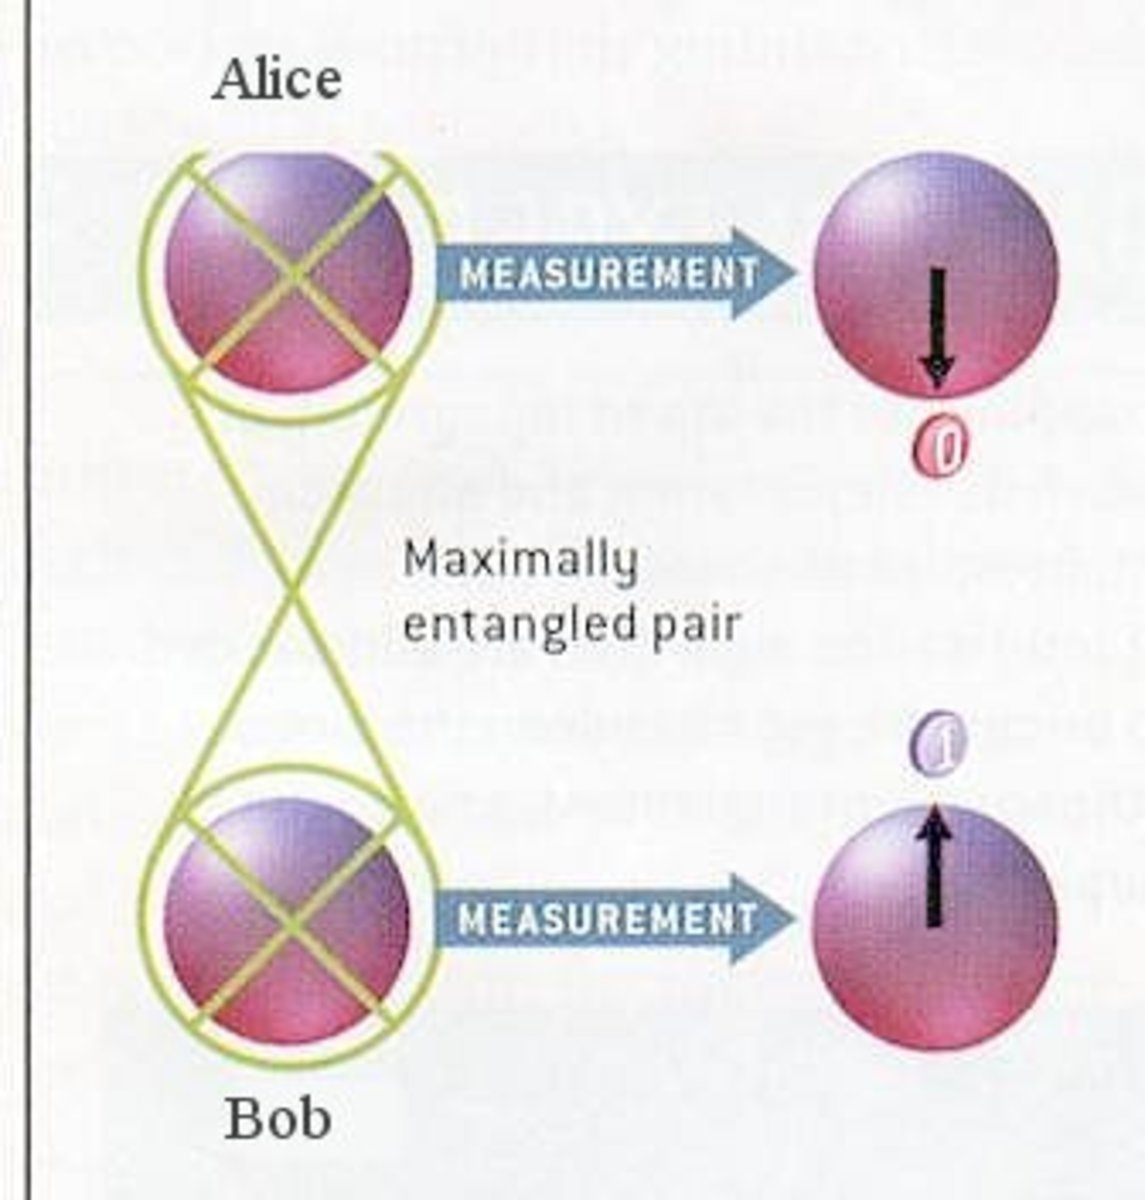 Two photons with fully entangled spins